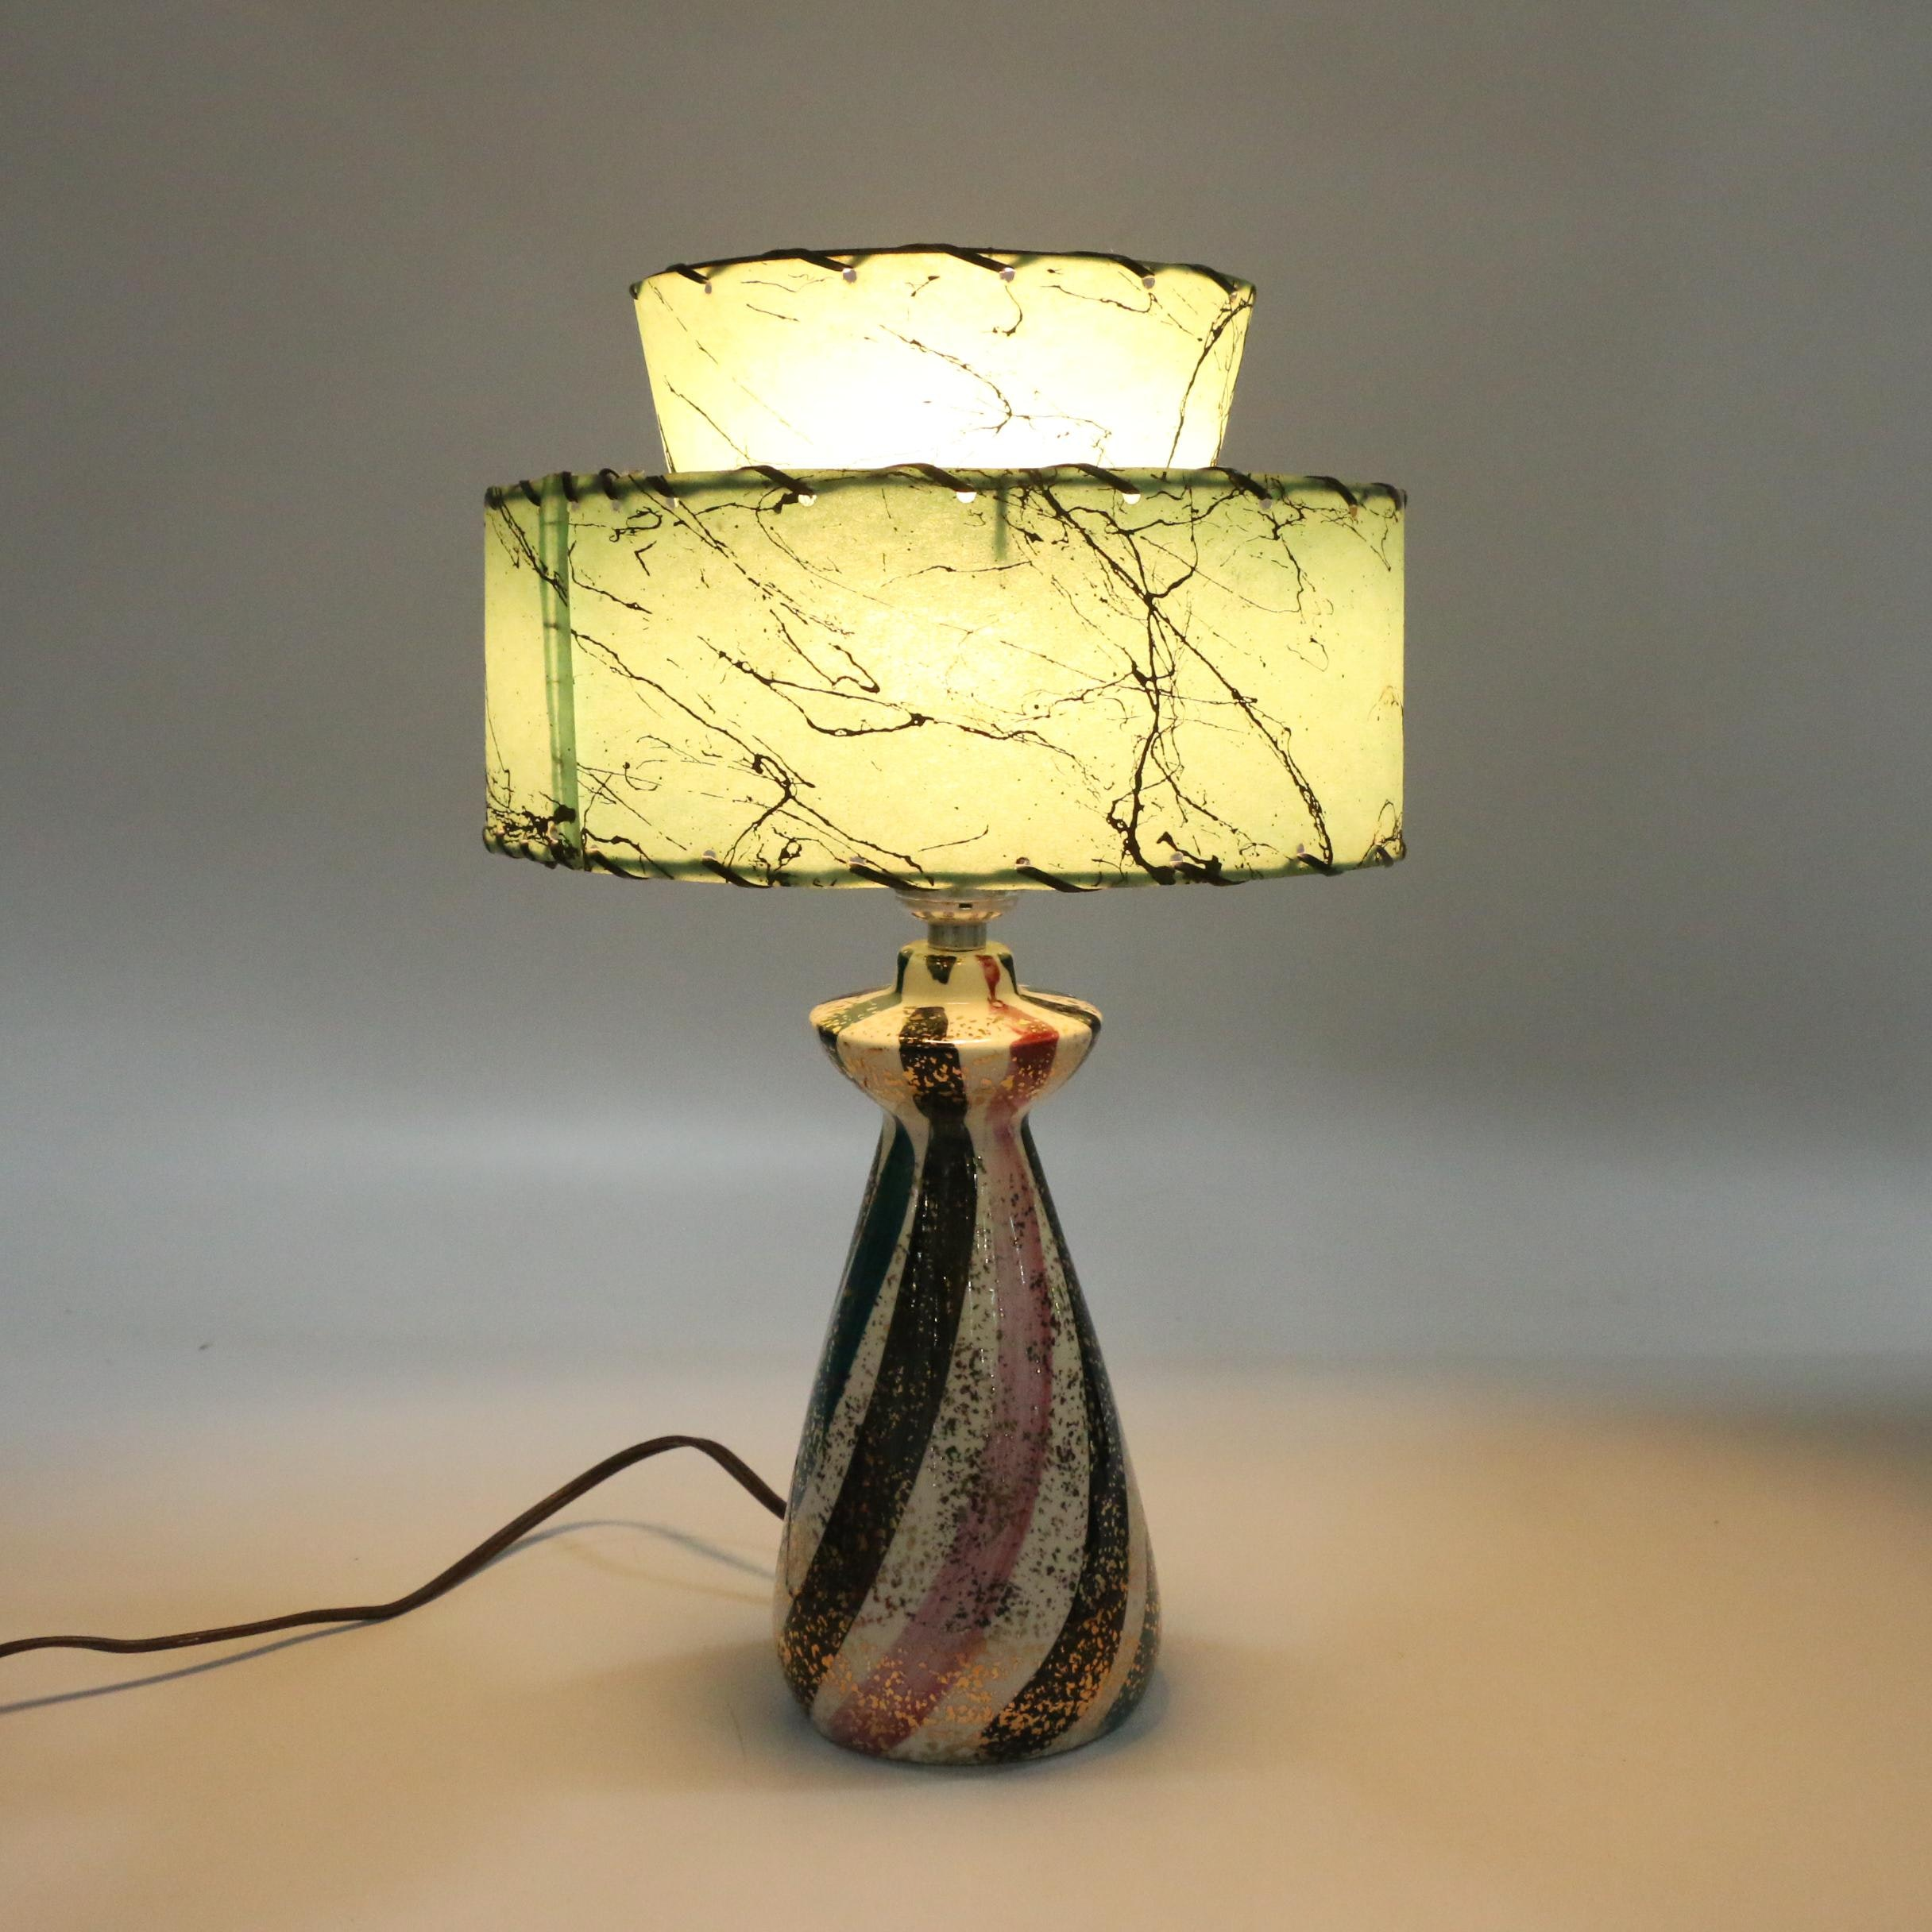 Mid Century Modern Ceramic Table Lamp with Fiberglass Shade